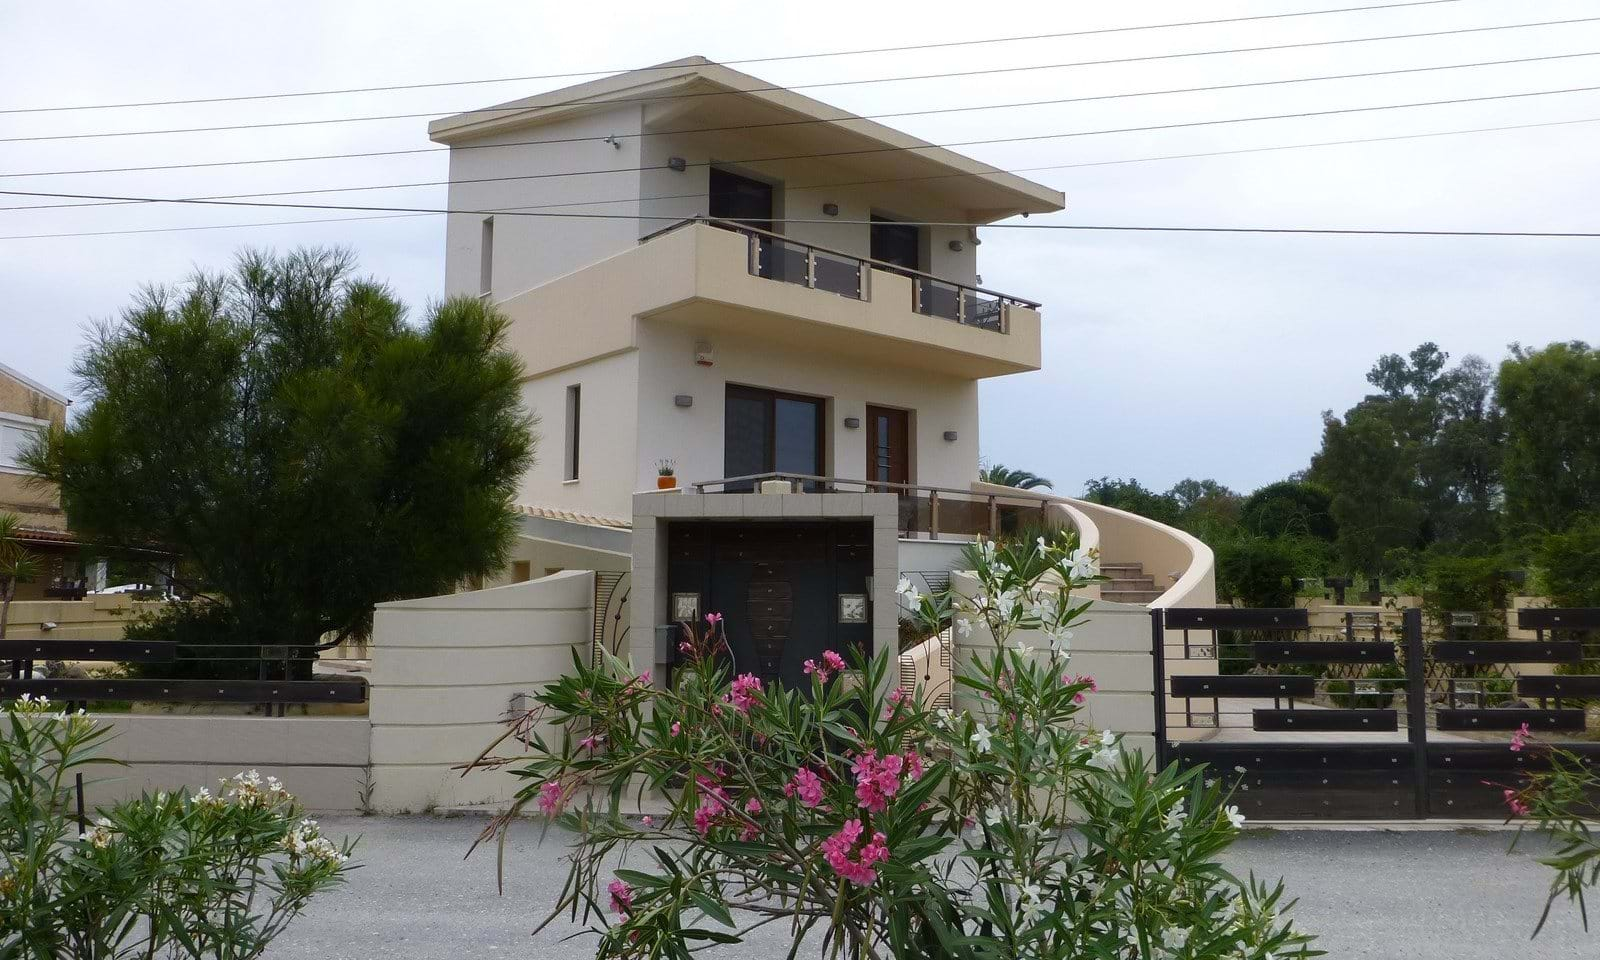 Villas for sale near the sea in Corfu